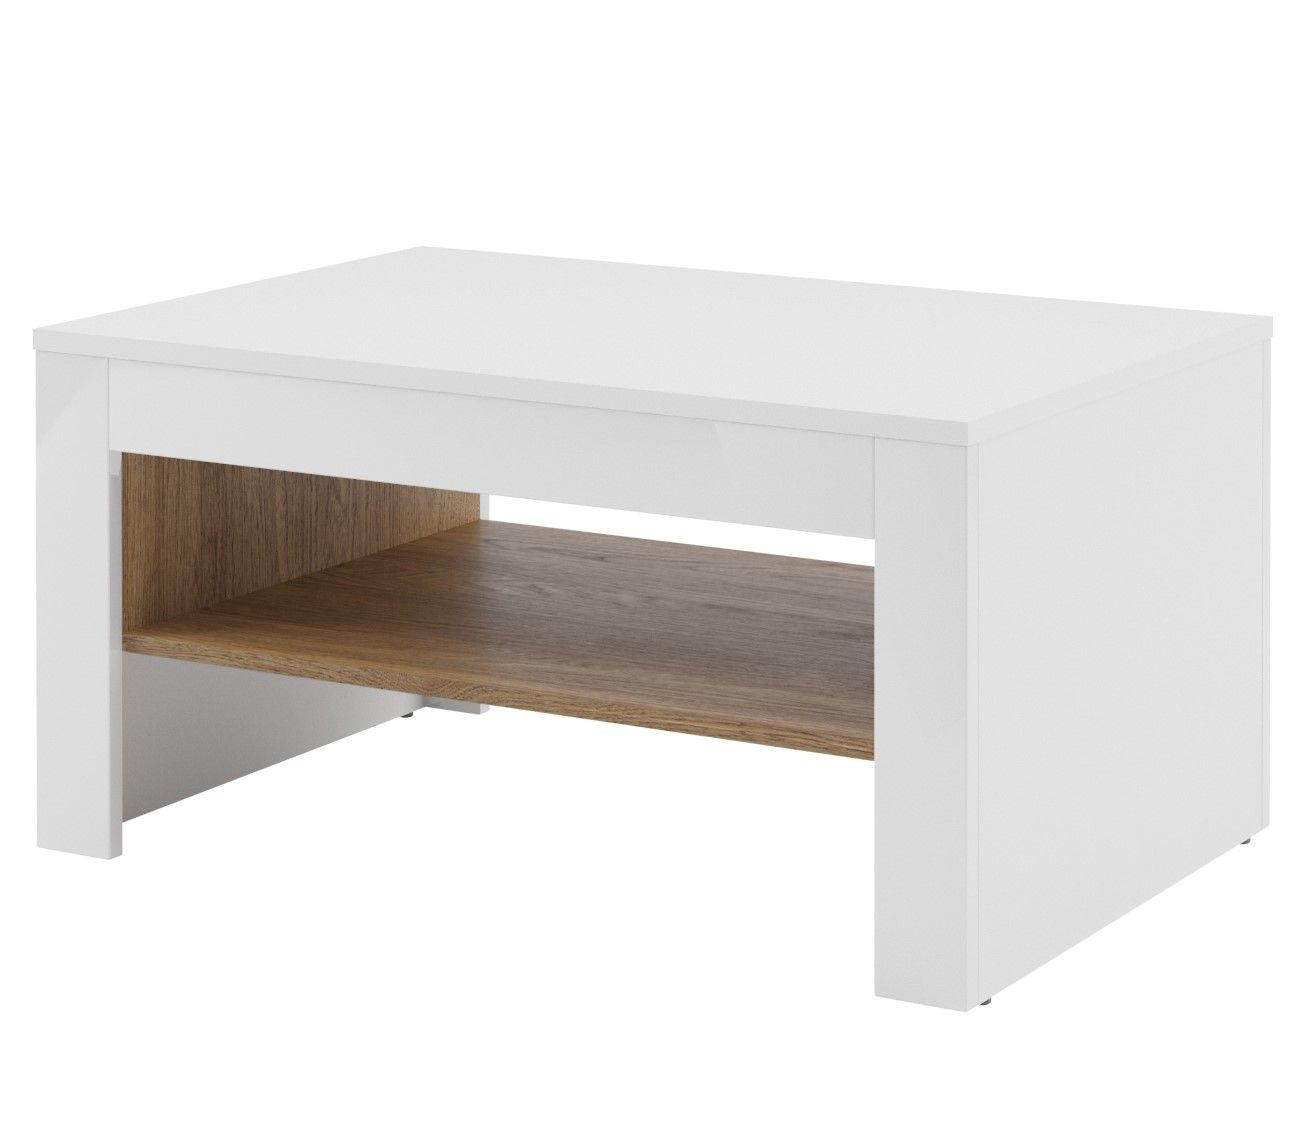 Bn Design High Gloss White And Walnut Coffee Table With 2: Calvino High Gloss White & Walnut Coffee Table Loung